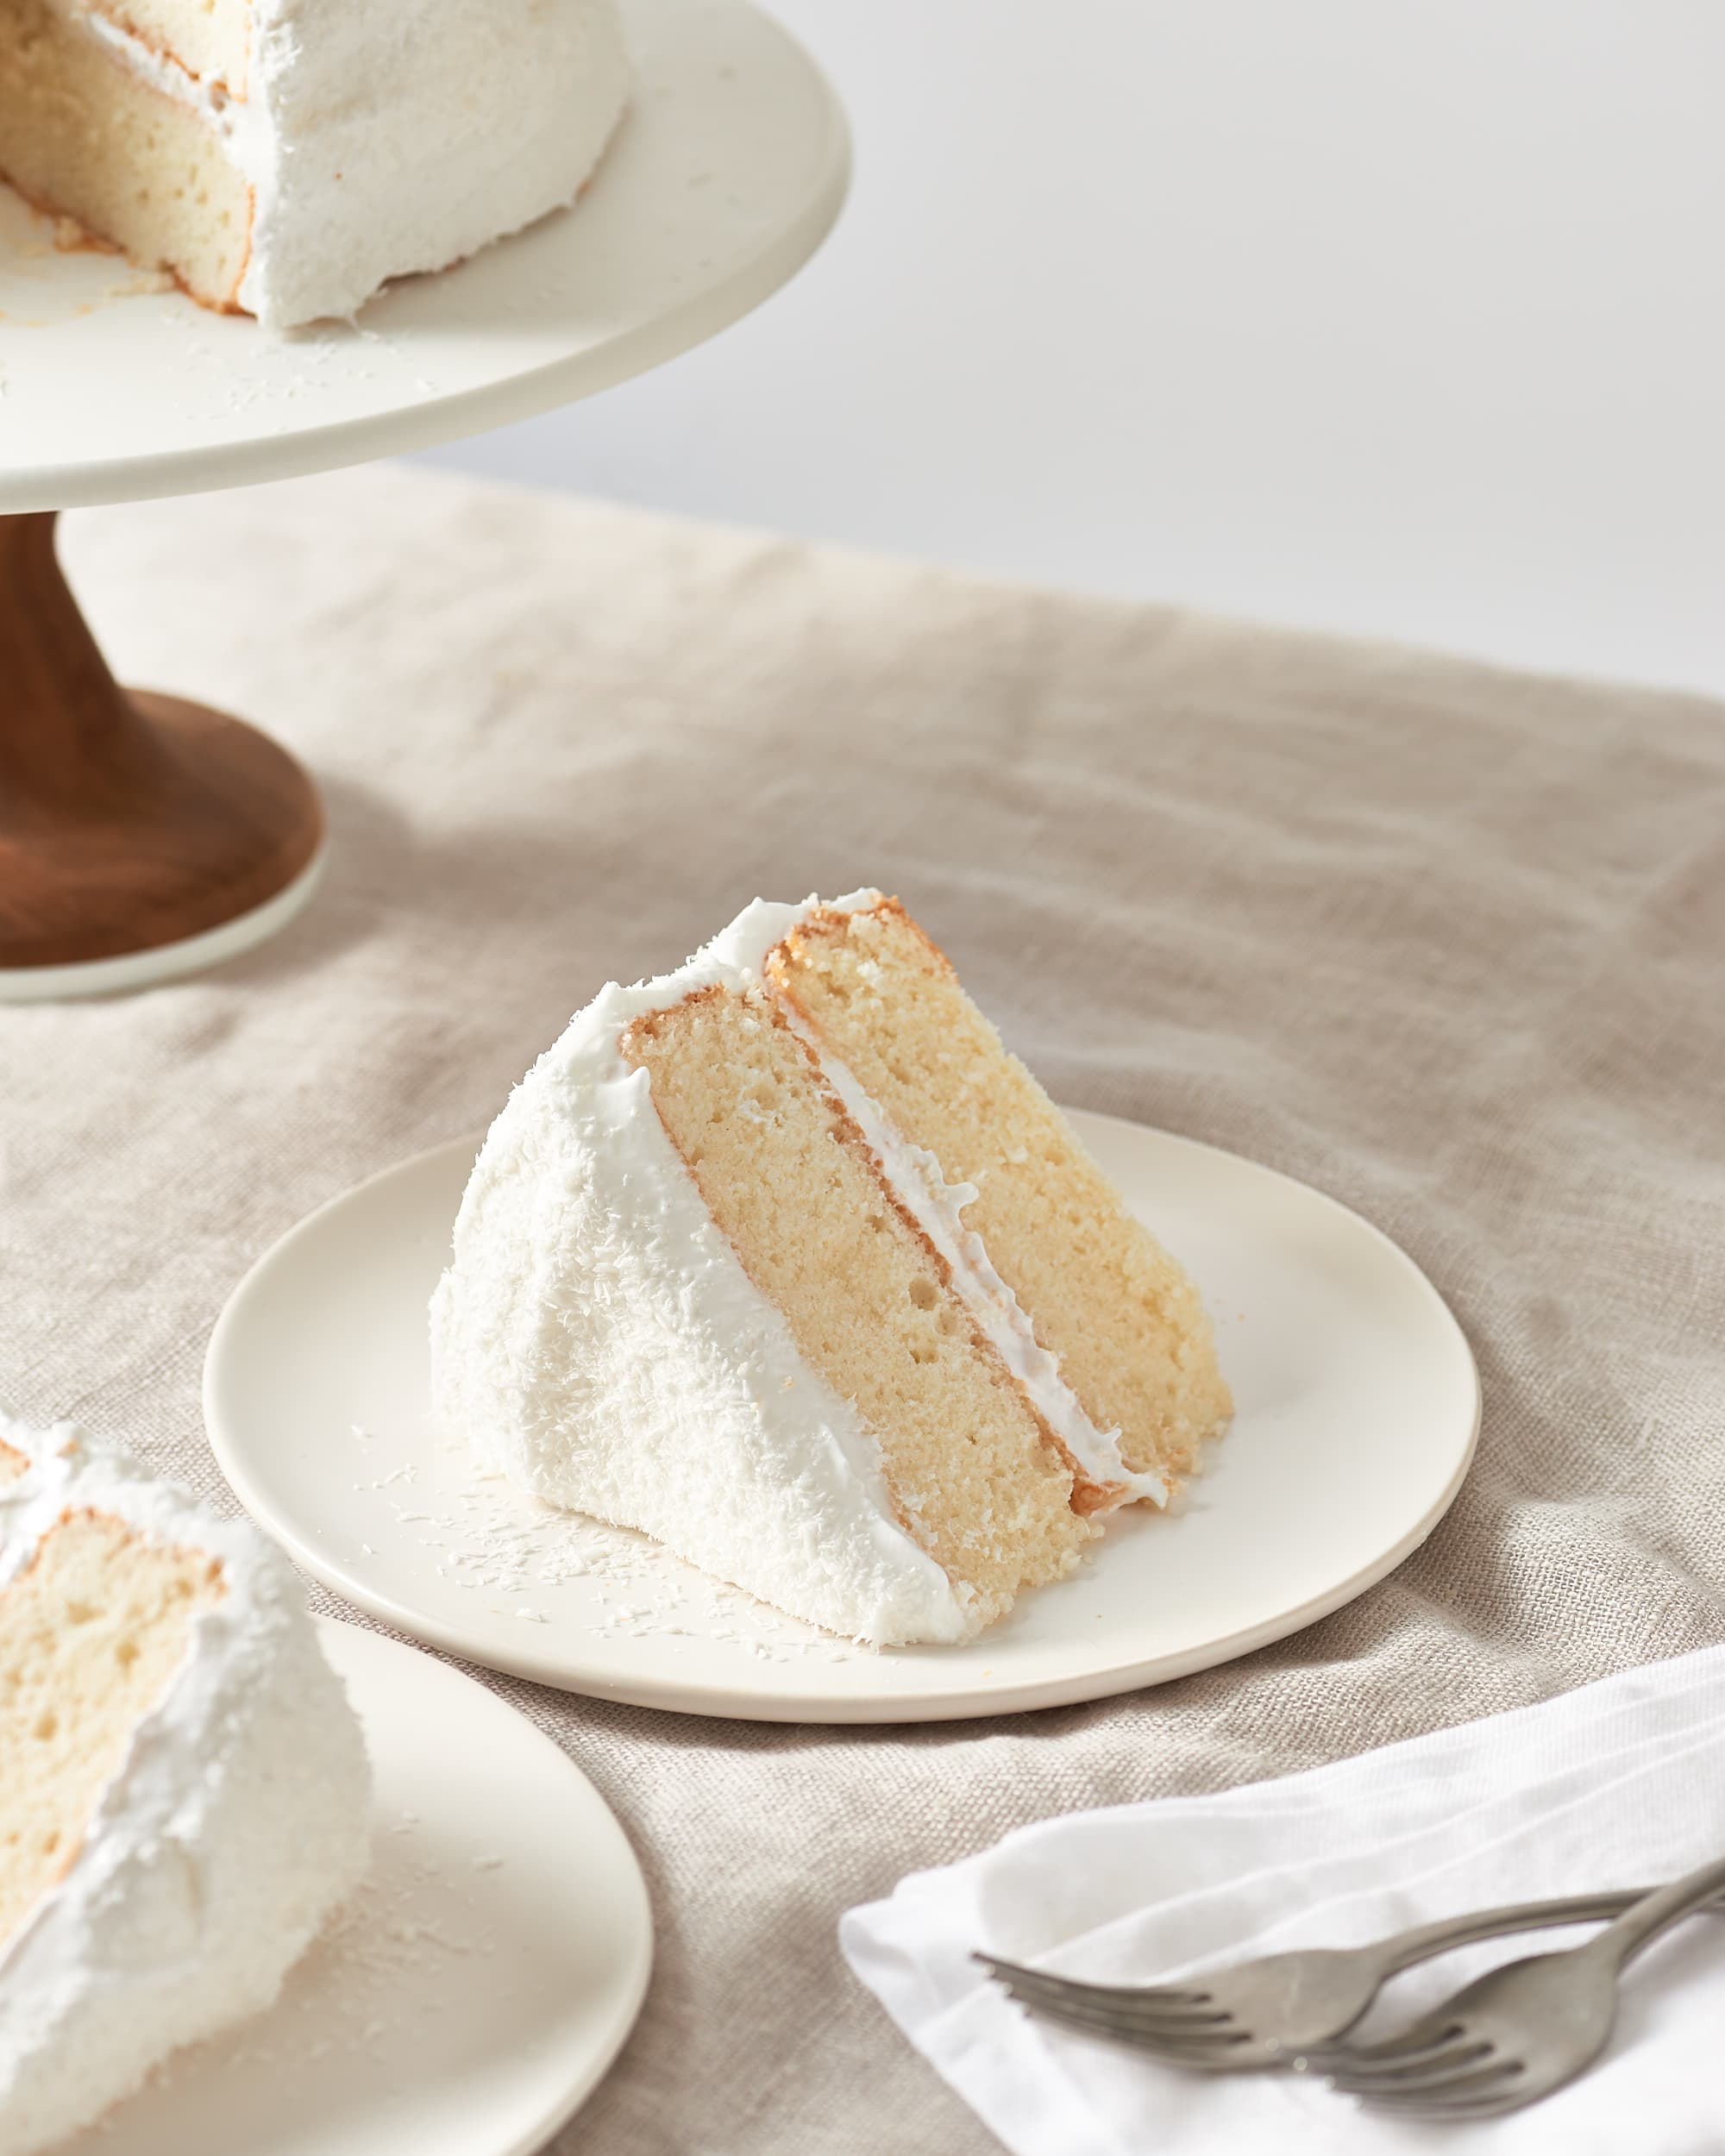 How To Make the Best Classic Coconut Cake from Scratch